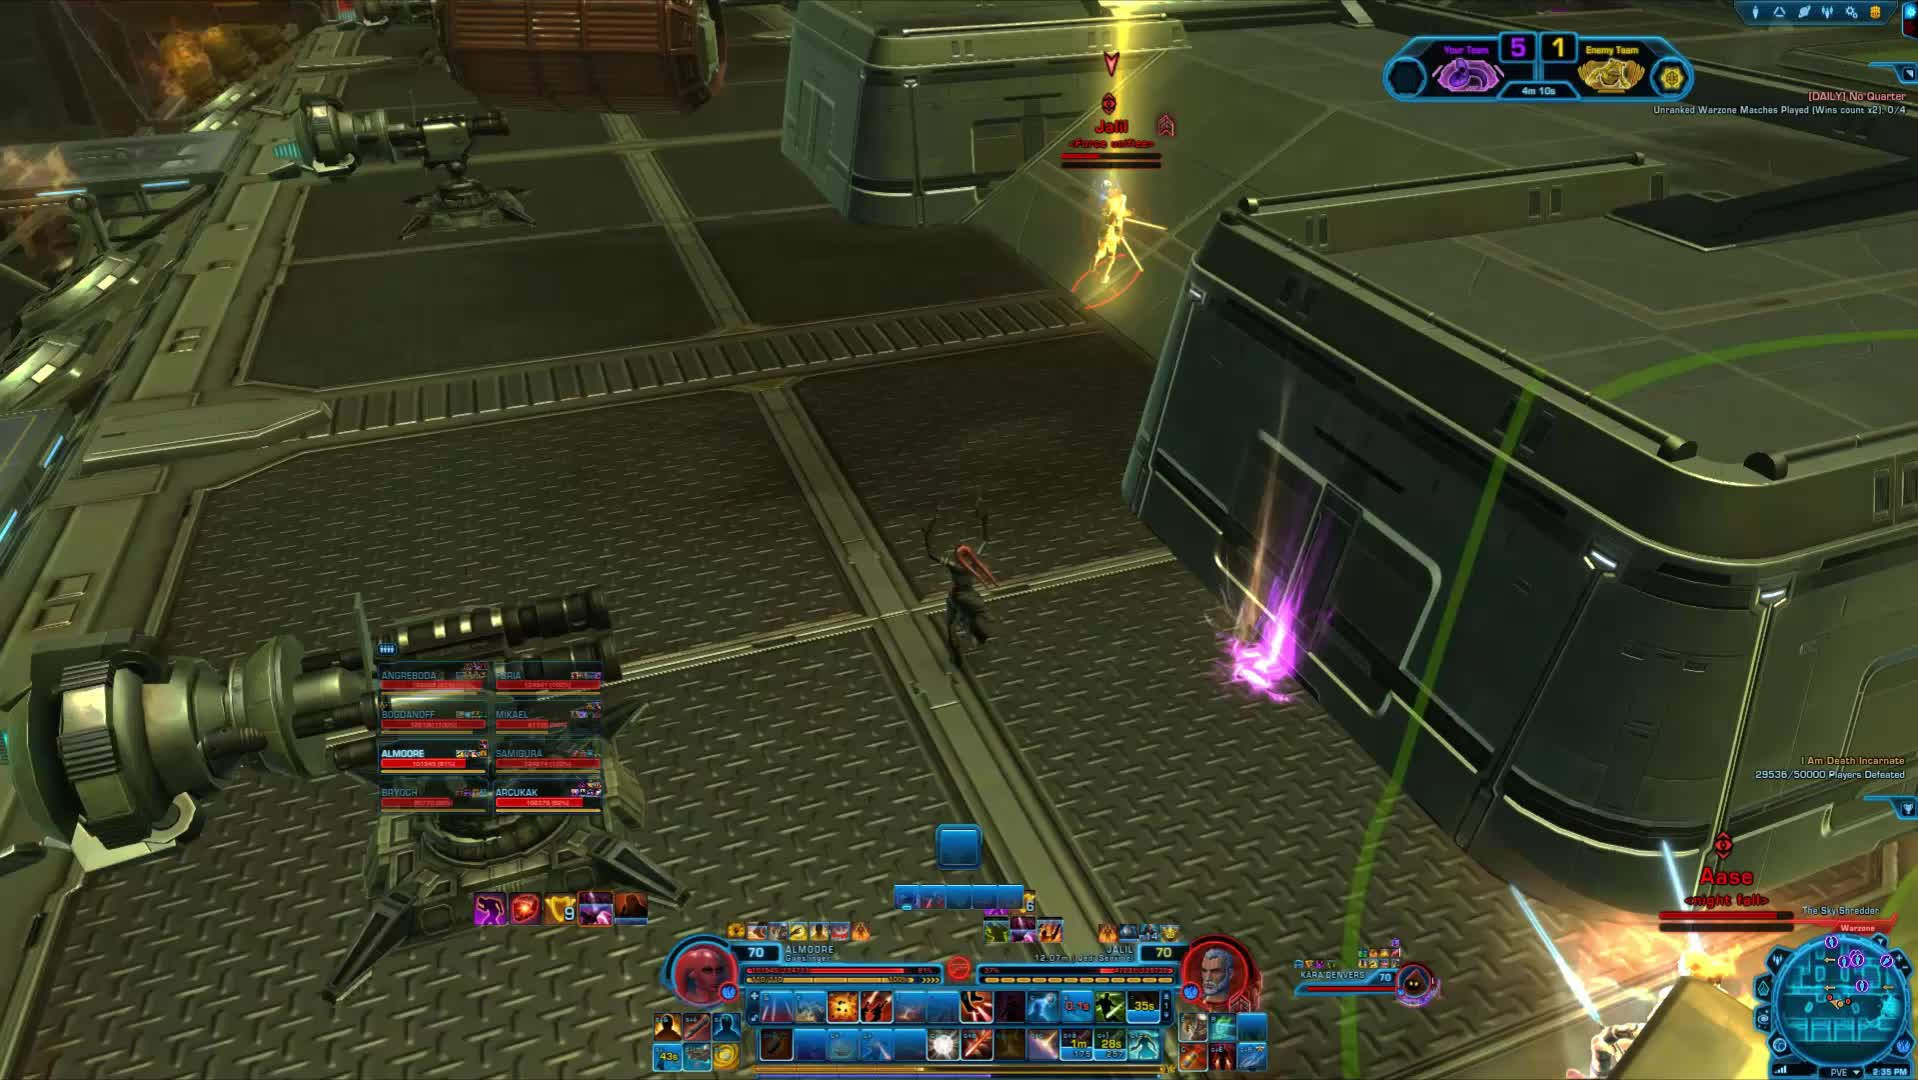 SWTOR PvP - This is mine GIFs